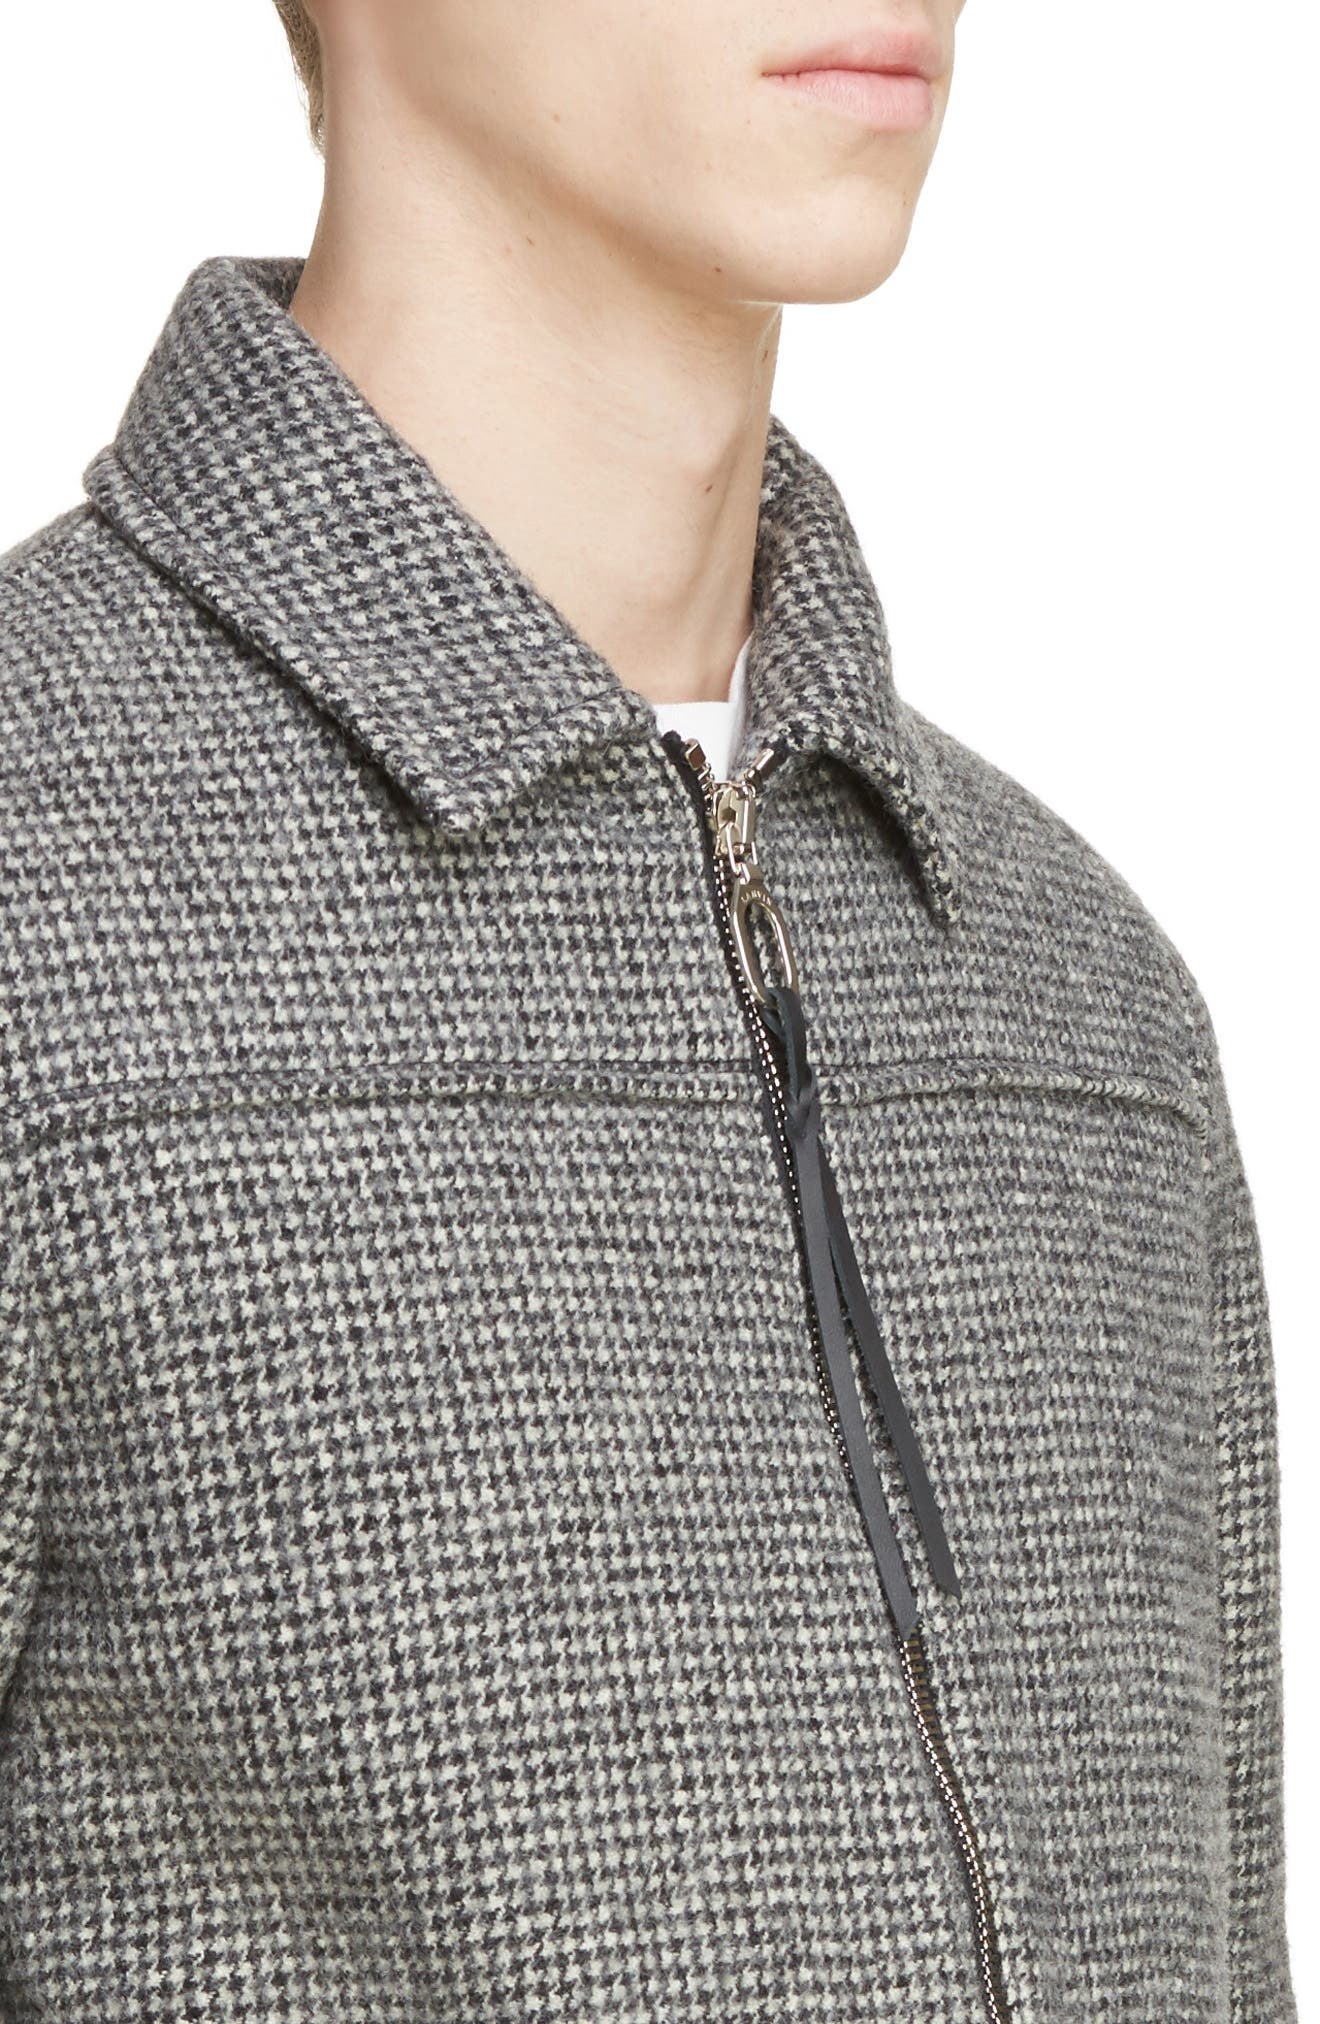 Houndstooth Wool Zip Front Jacket,                             Alternate thumbnail 4, color,                             021